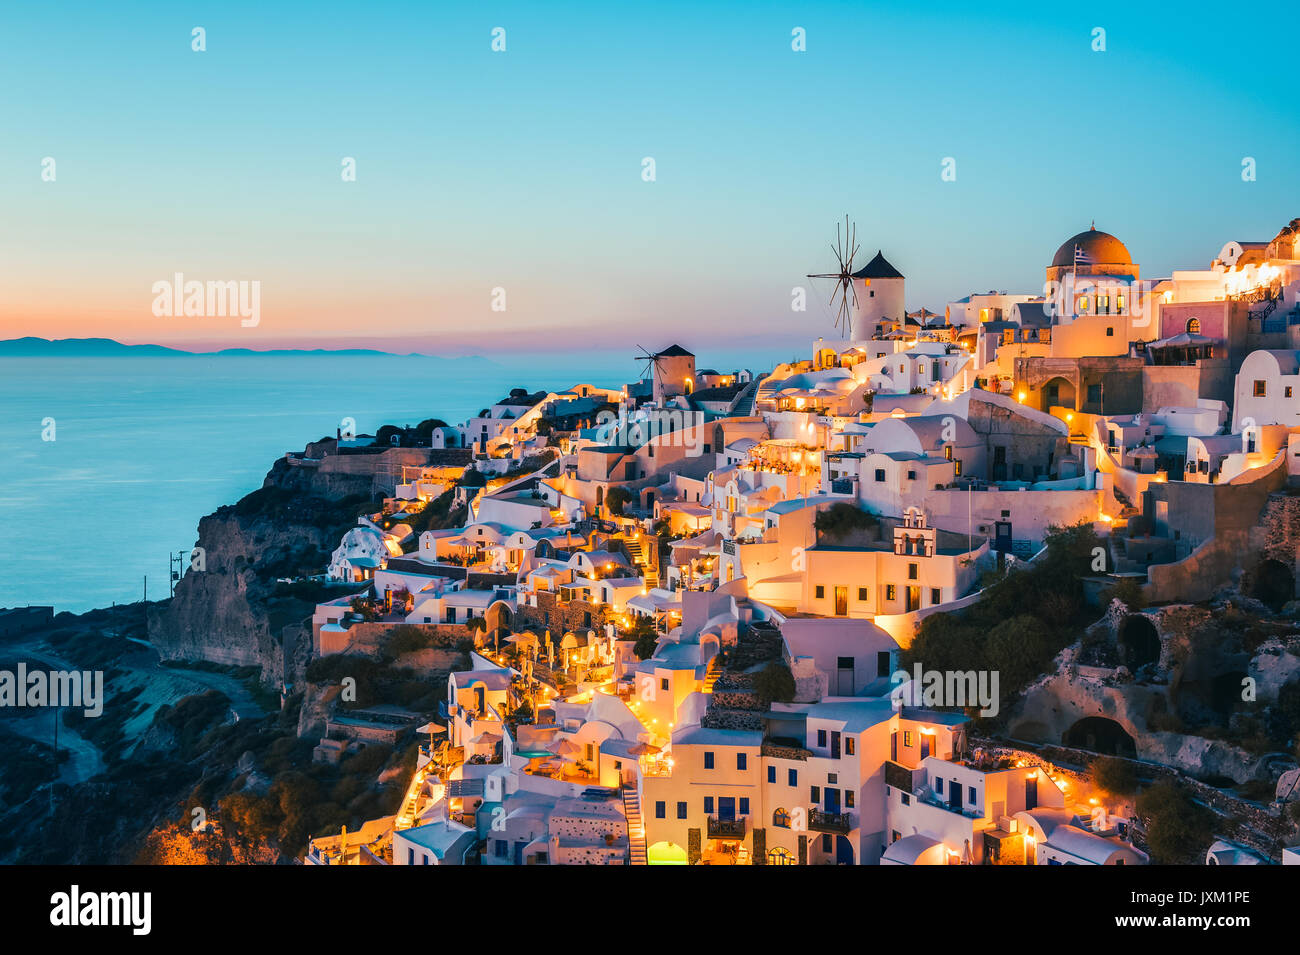 Oia Santorini Greece at dusk - Stock Image